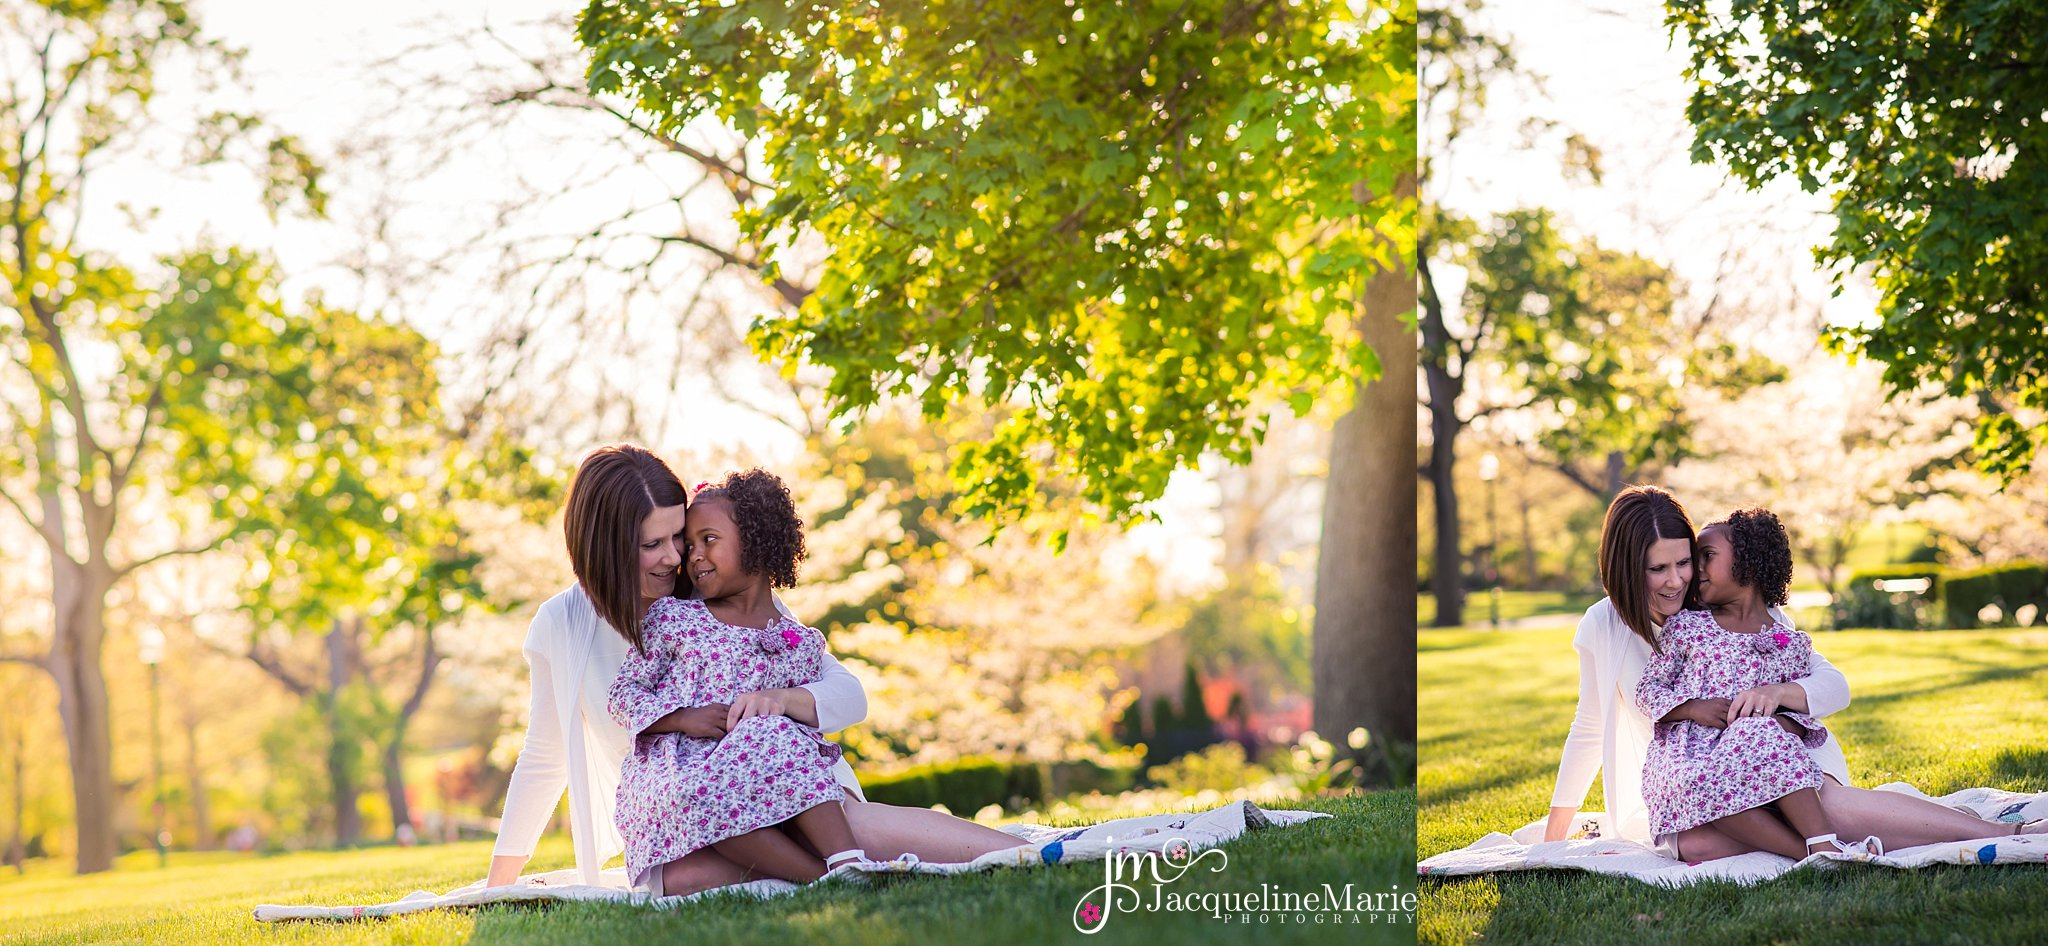 mommy and me session | mother daughter hug | mother daughter outdoor photography | Mother's day session | Family photographer Columbus